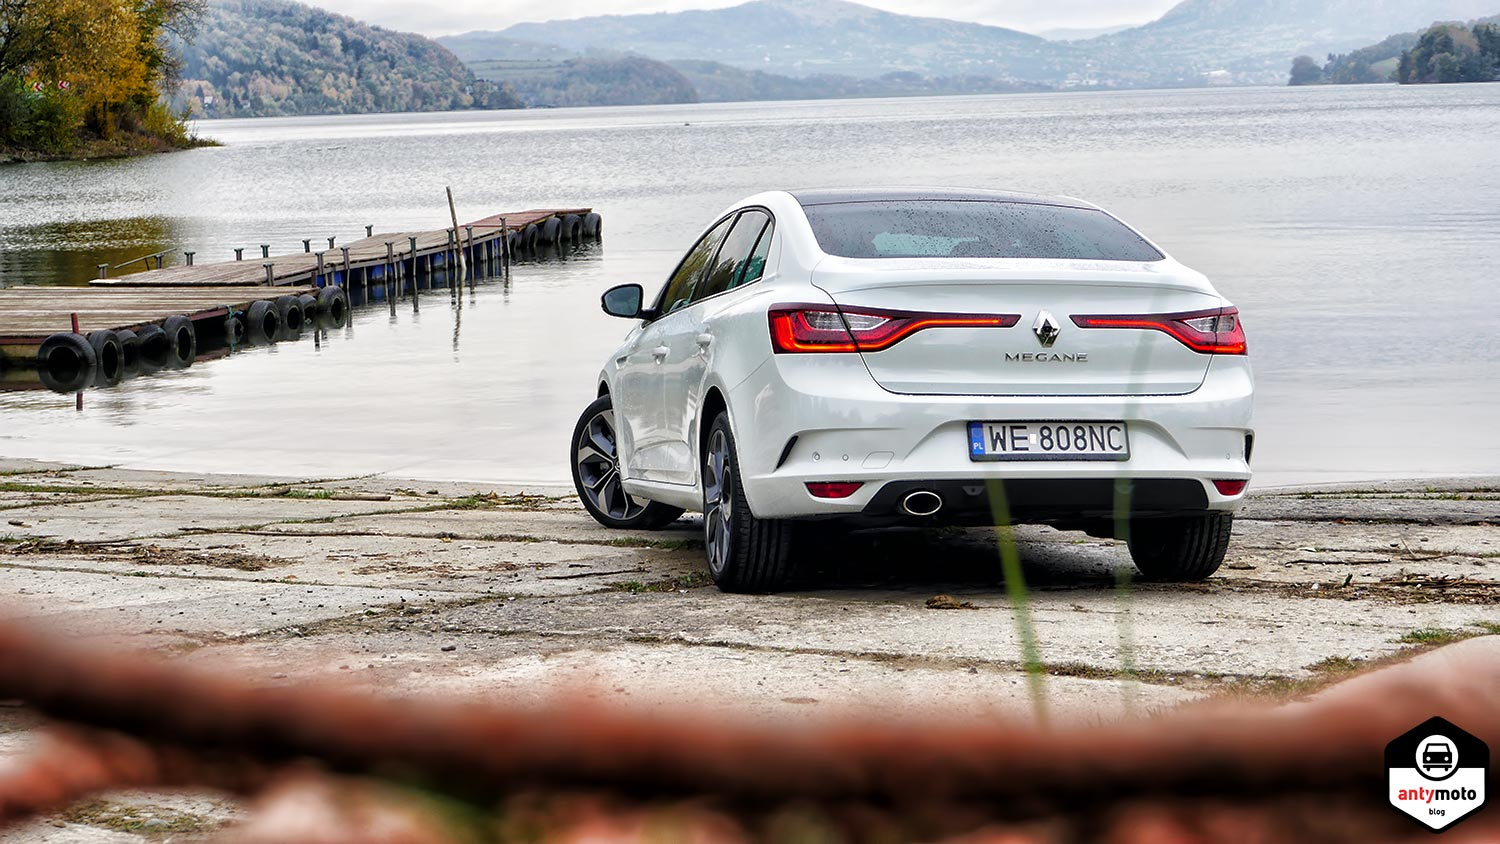 Renault Megane GrandCoupe test